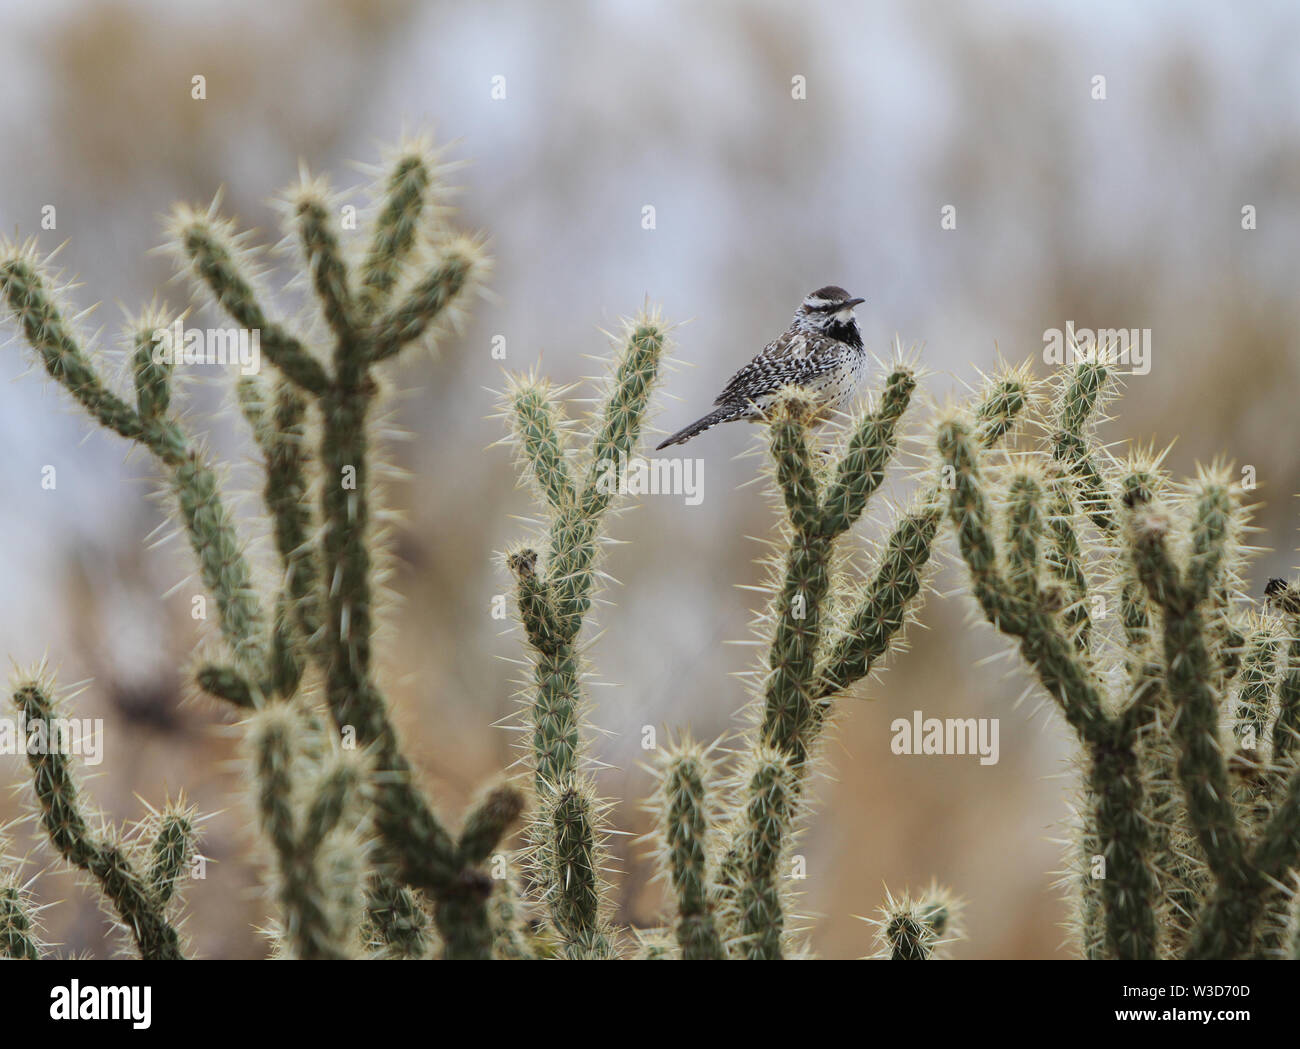 Cactus Wren Bird sits on Cholla Cactus in Arizona. Stock Photo